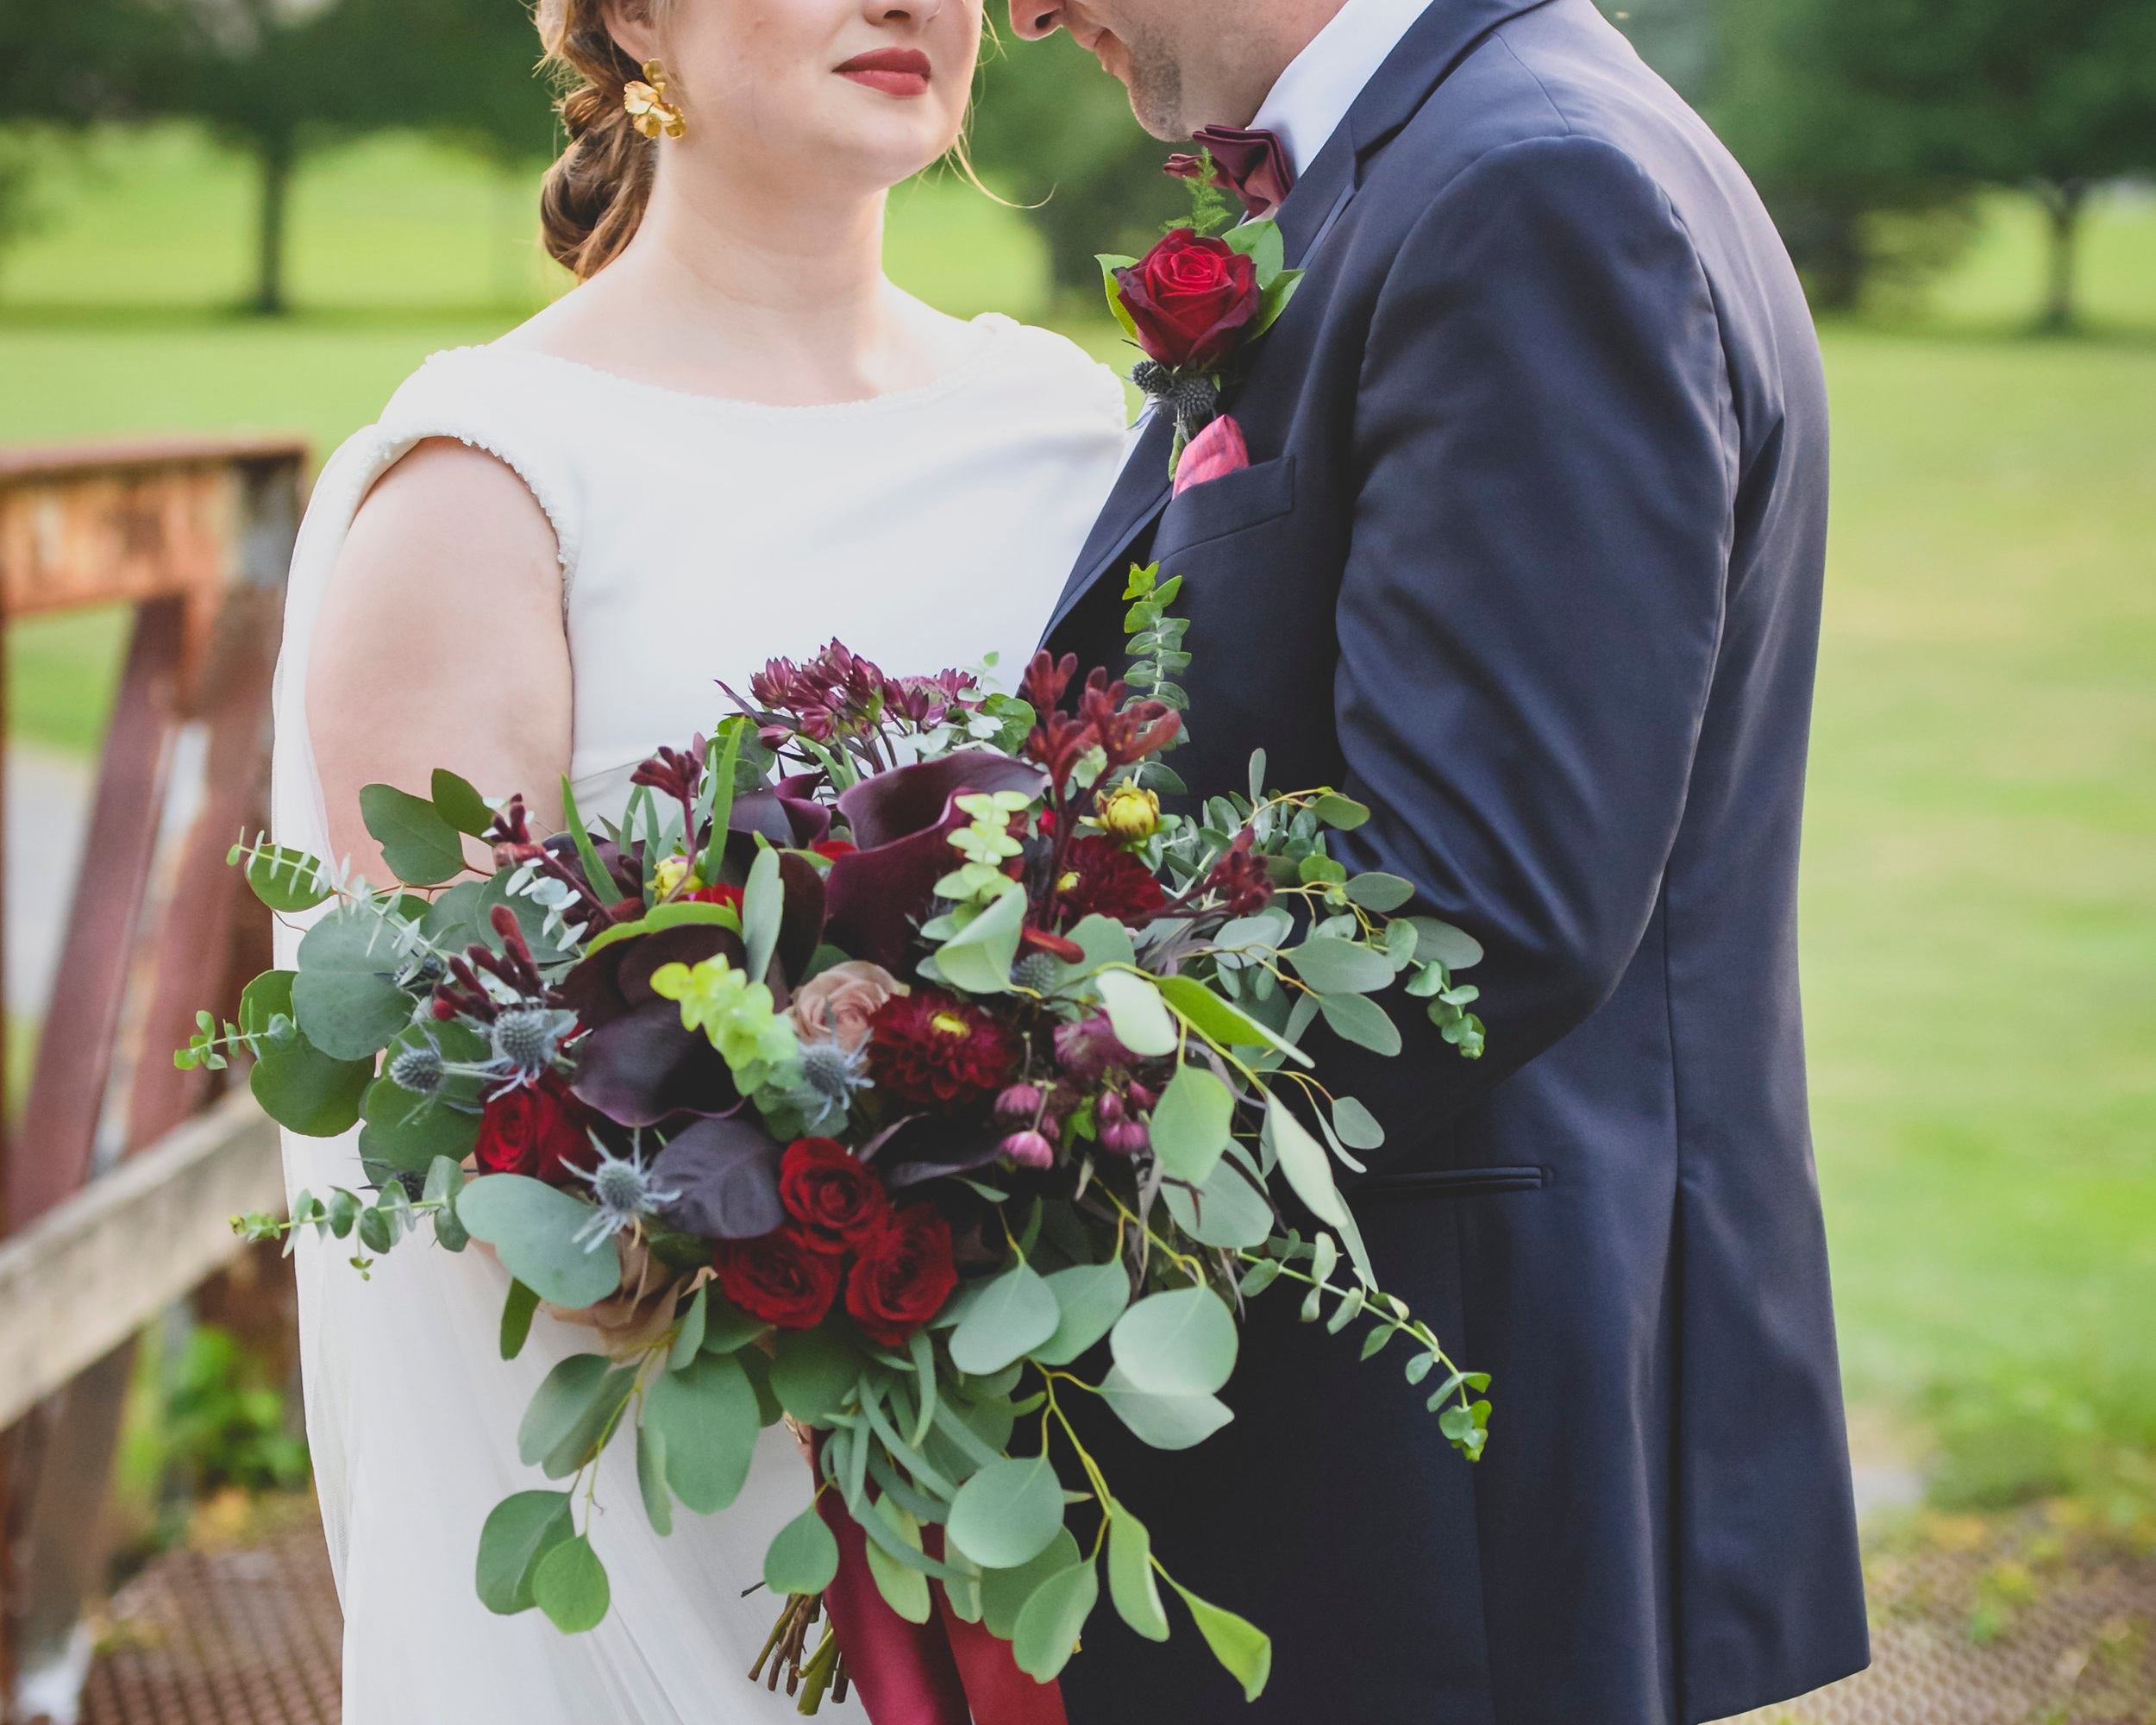 Bride and groom holding a seasonal fall bouquet with natural greens and deep red roses.